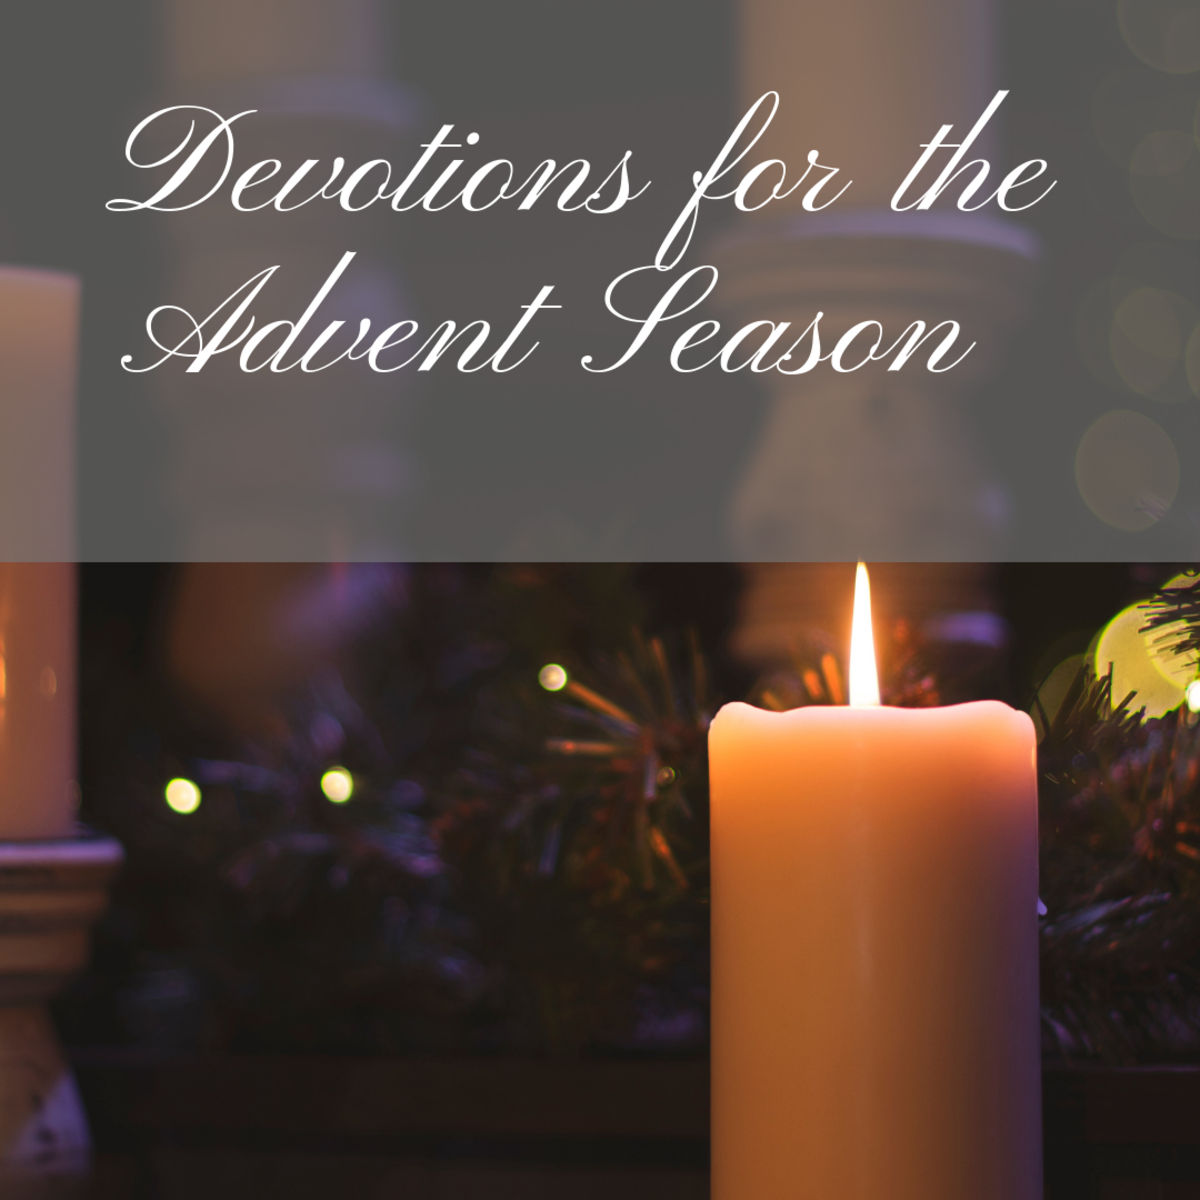 These readings are great for the advent season!